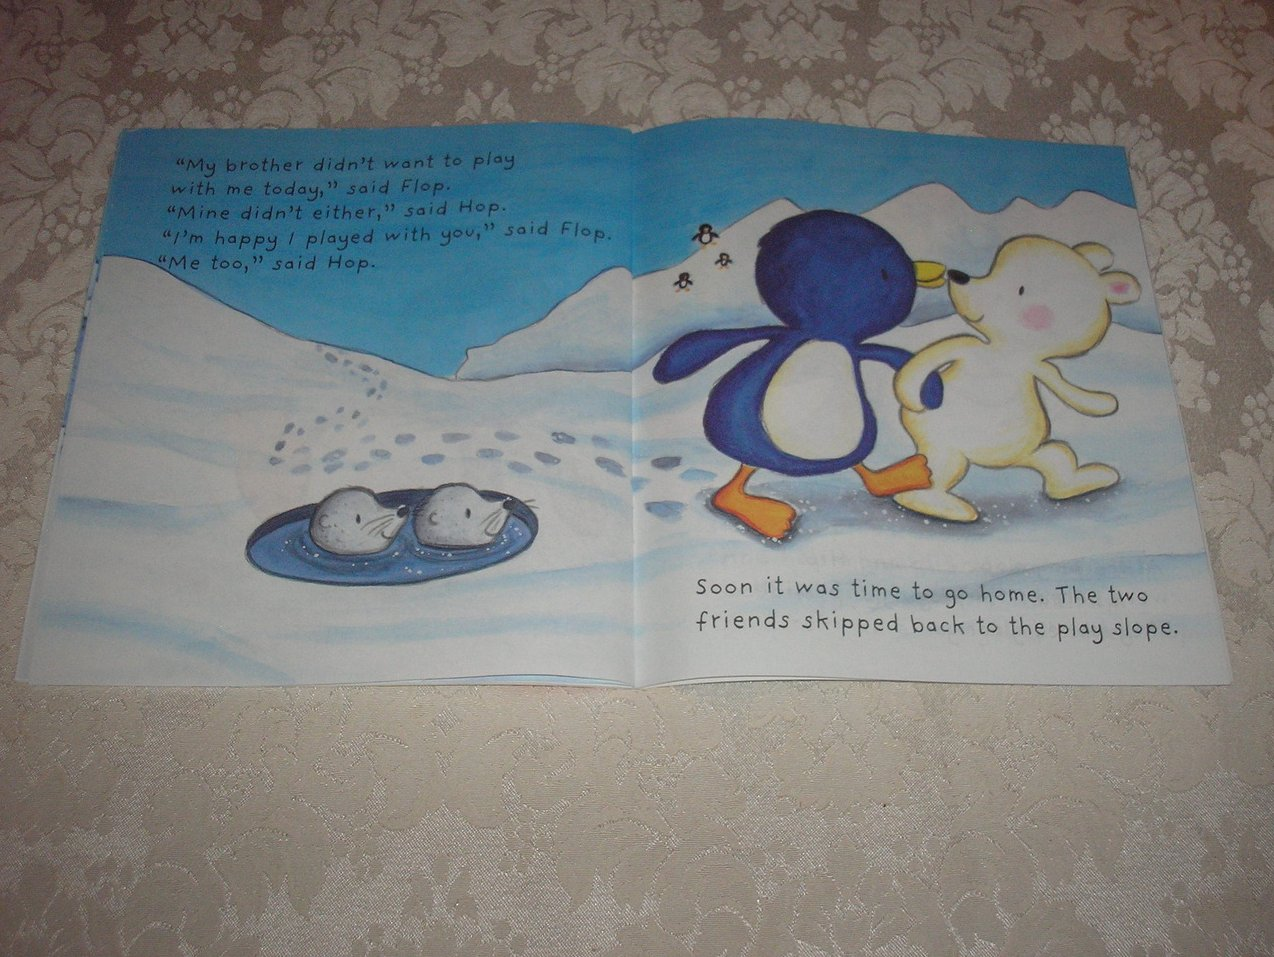 Image 4 of Flip and Flop Dawn Apperley Brand New Softcover